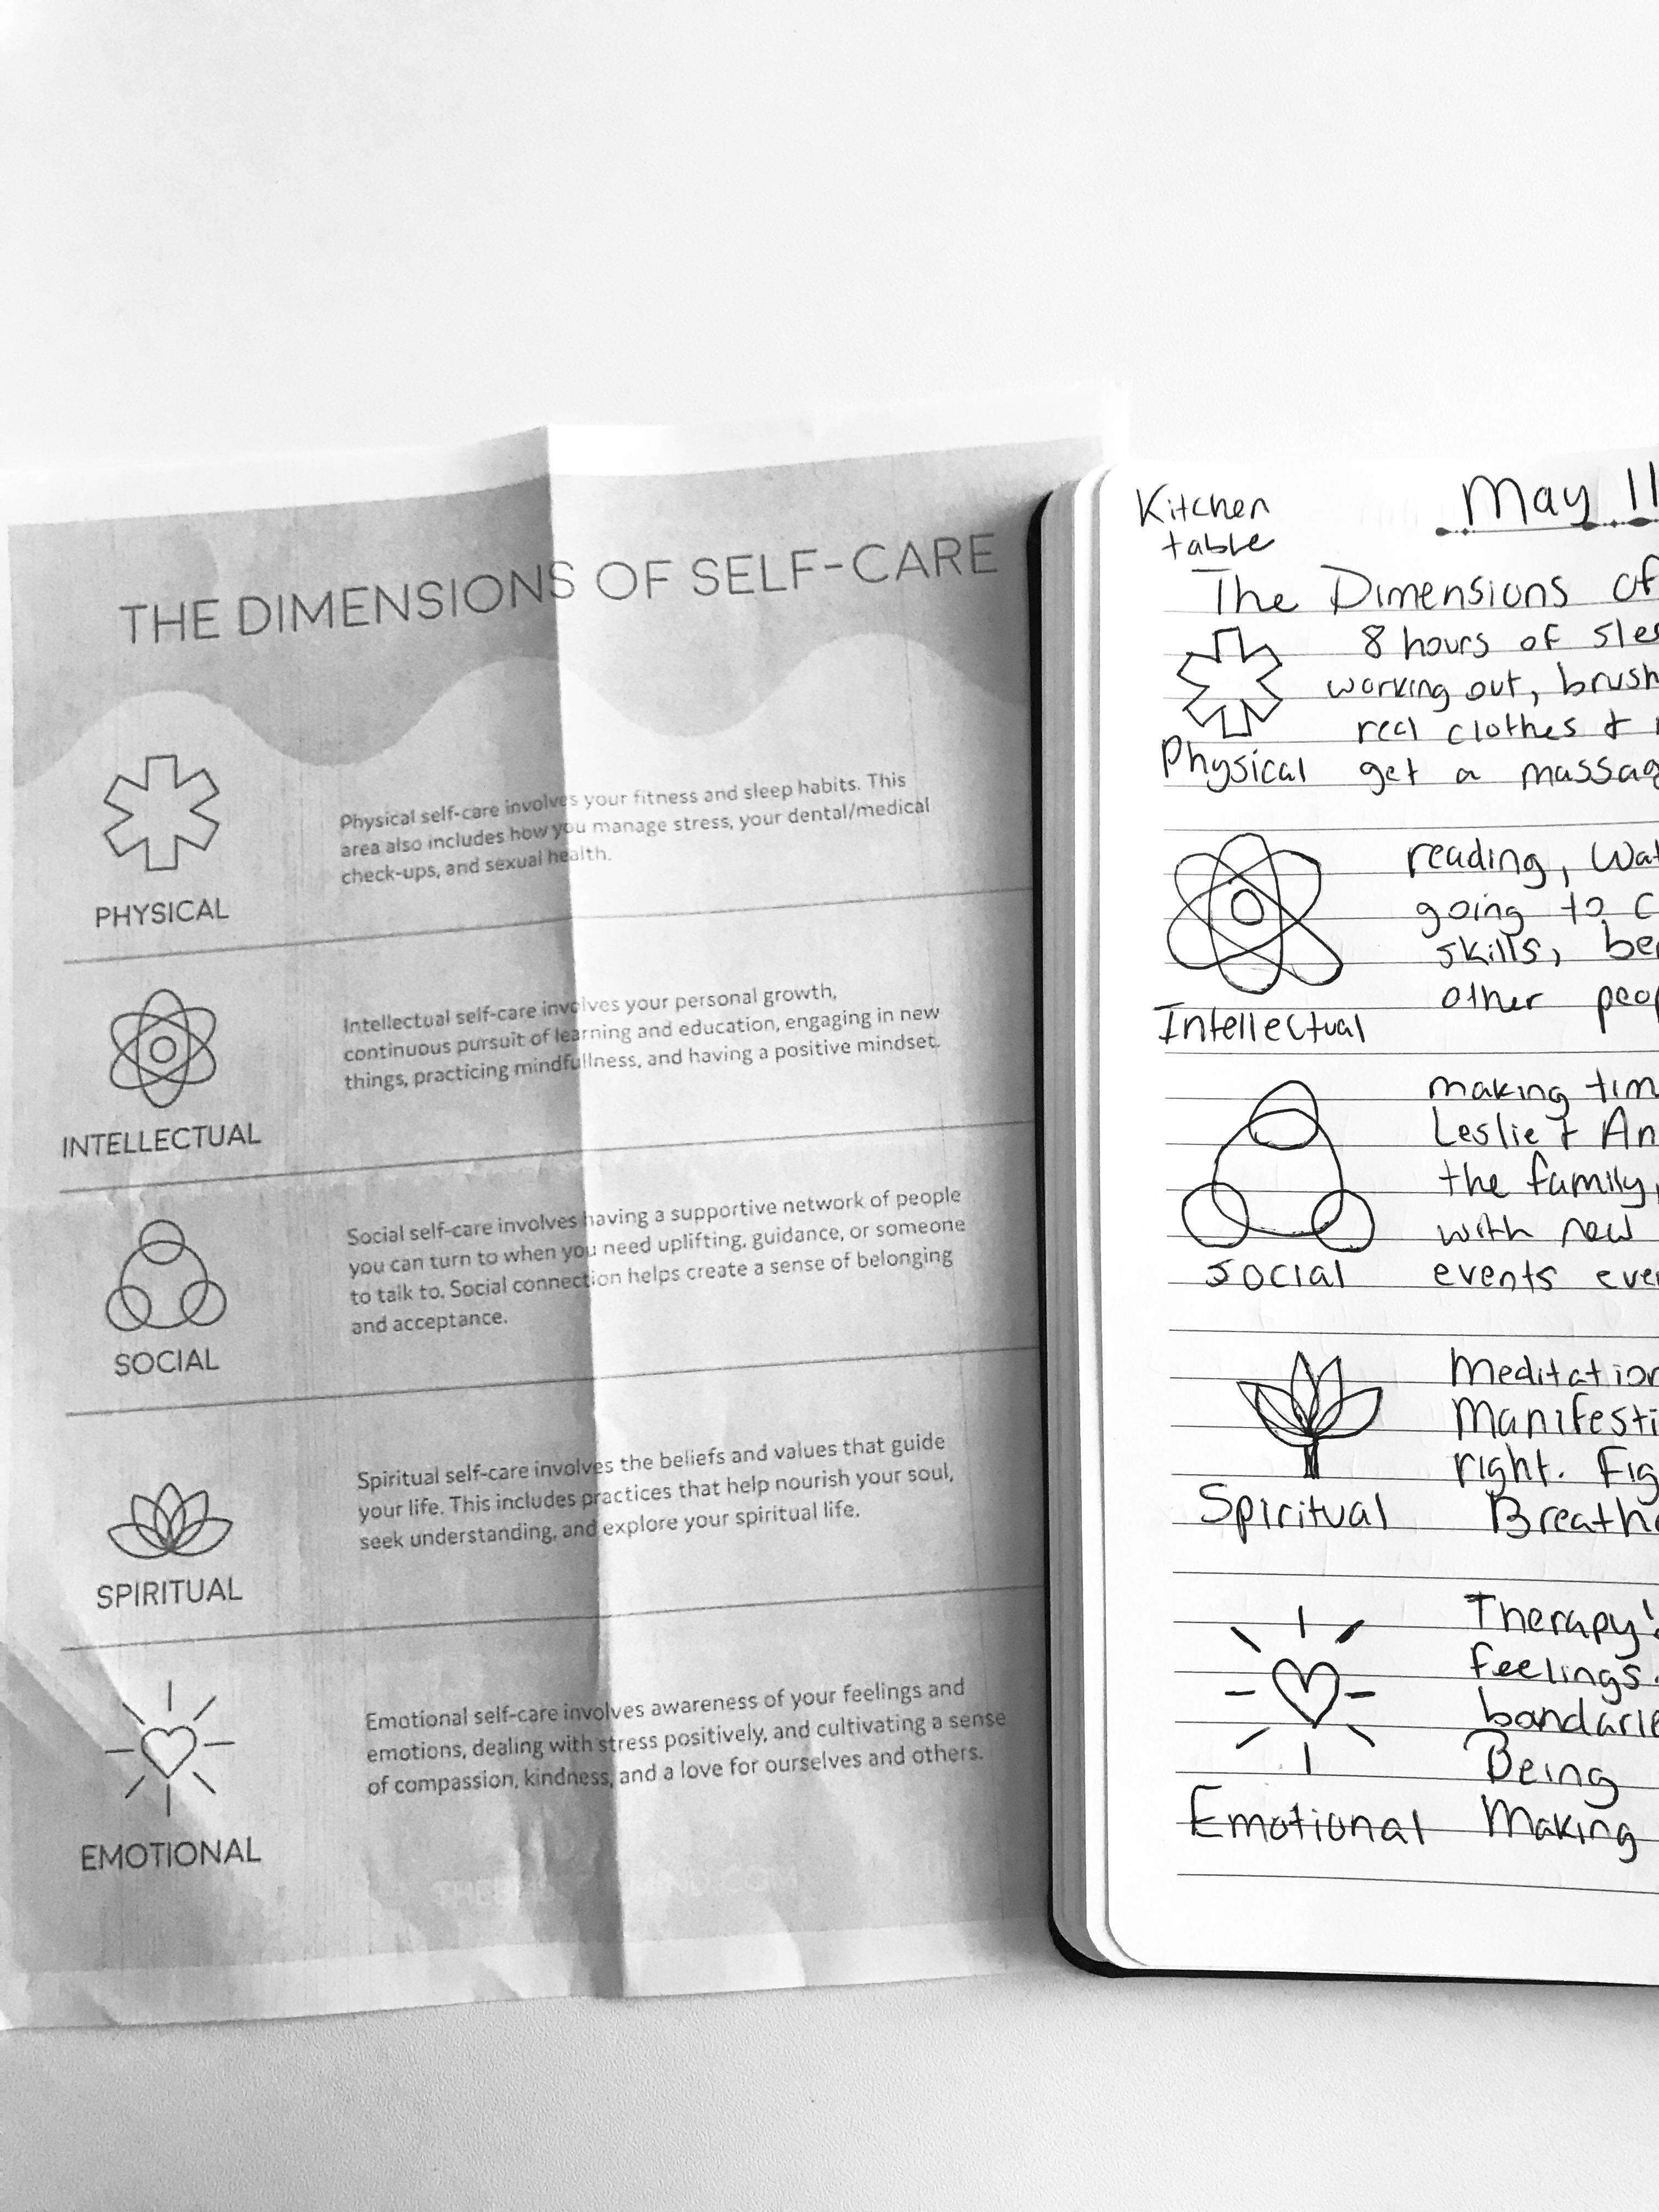 5 Dimensions Of Self Care I Wrote What I Do In Each Area